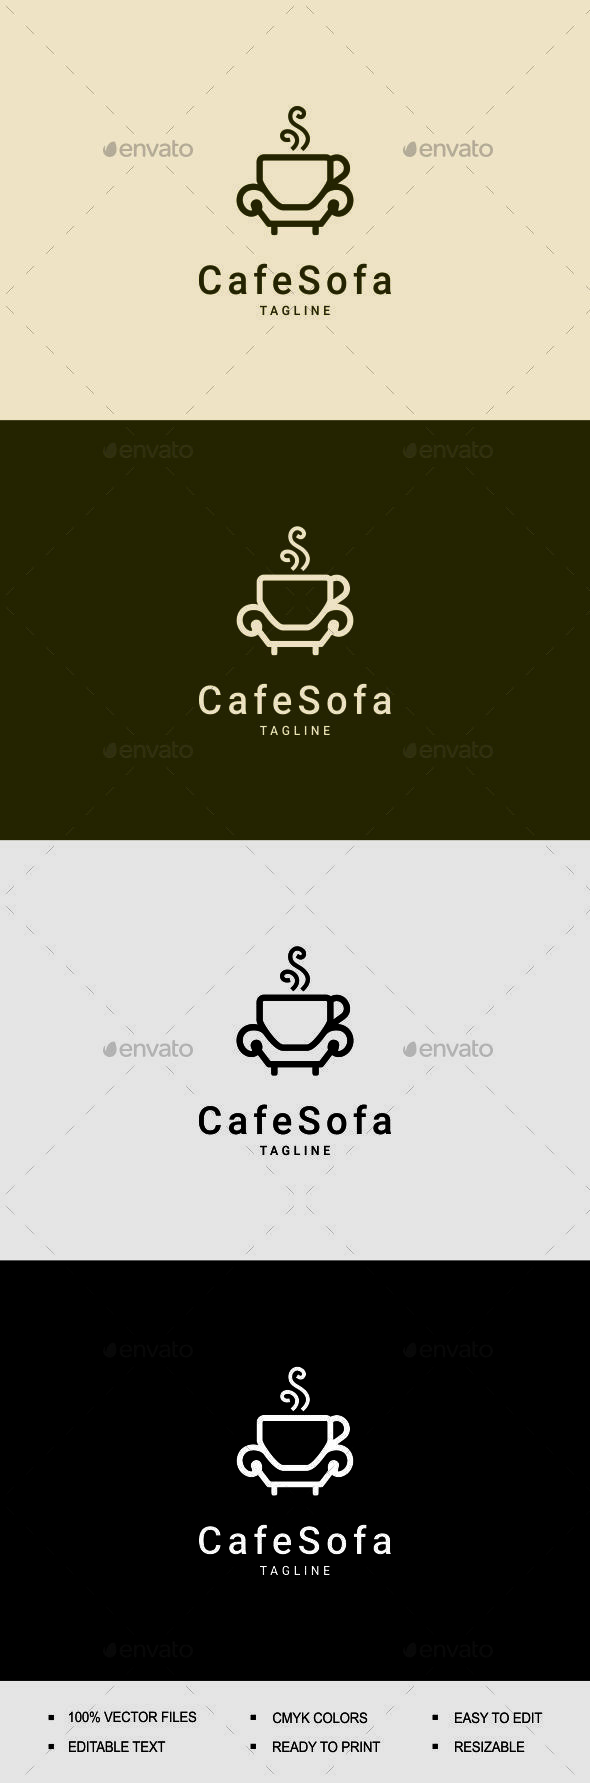 Cafe Sofa Logo - Restaurant Logo Templates